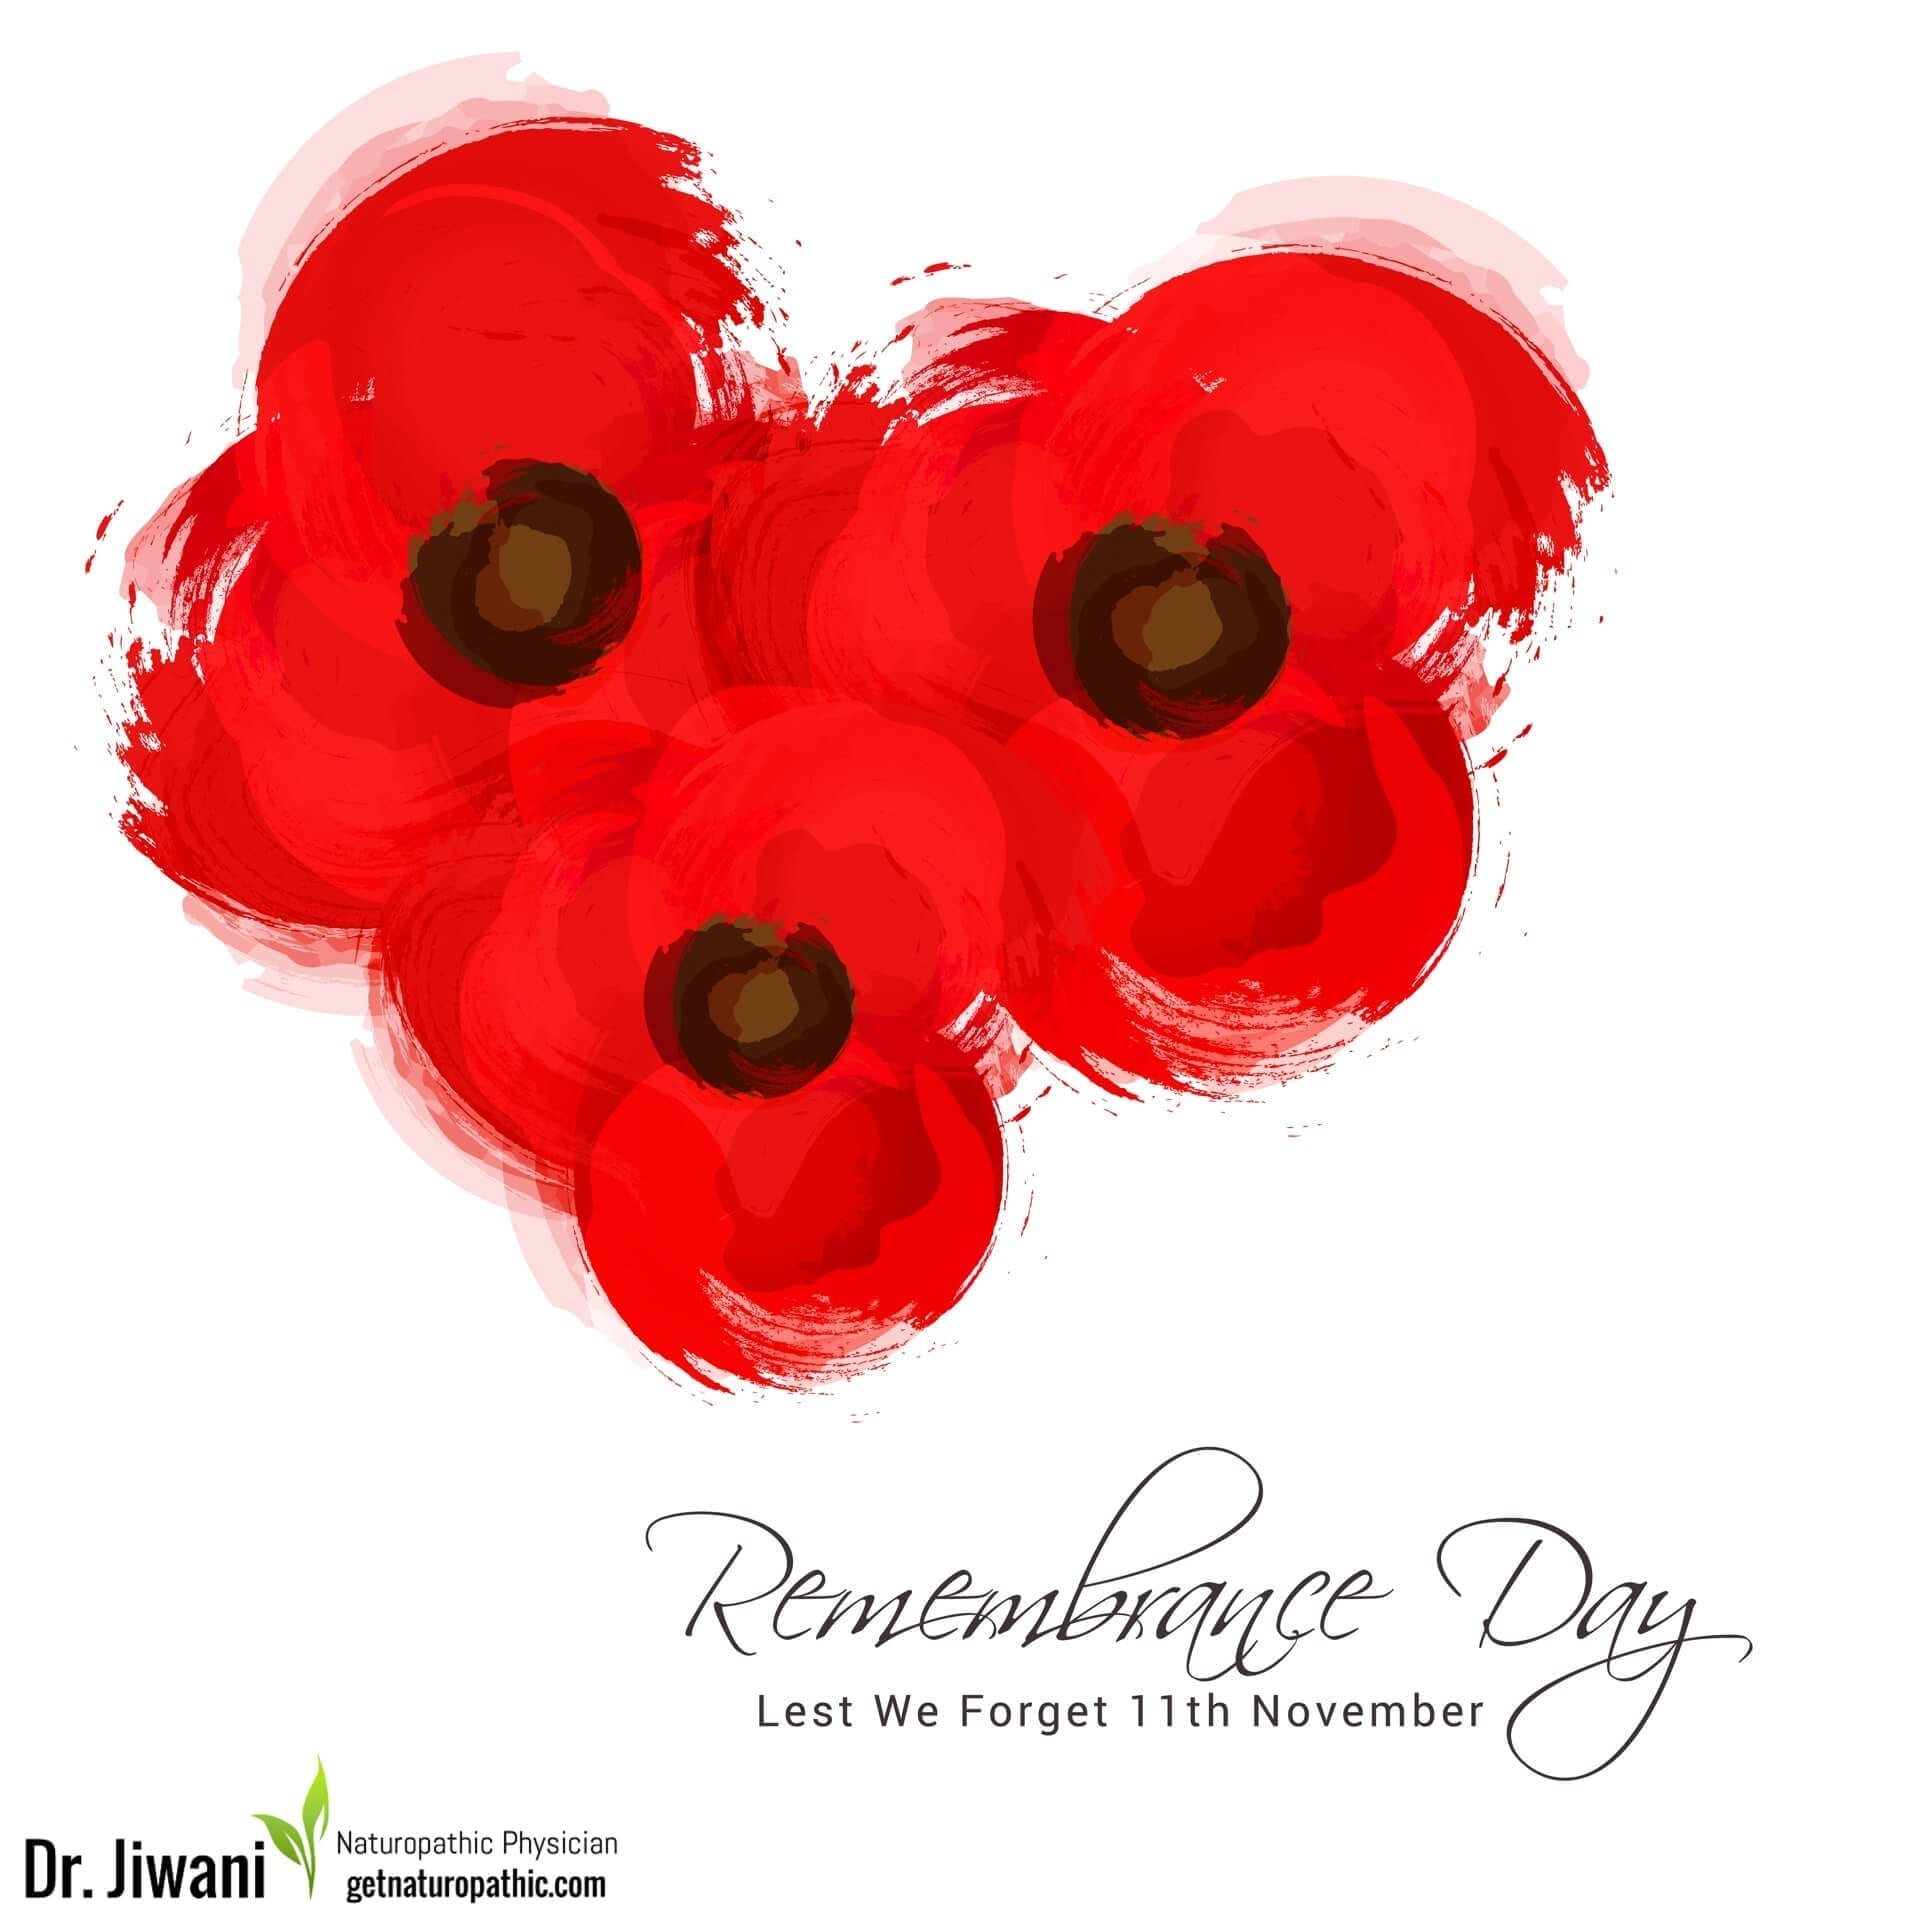 Remembrance Day: Lest We Forget | Dr. Jiwani's Naturopathic Nuggets Blog